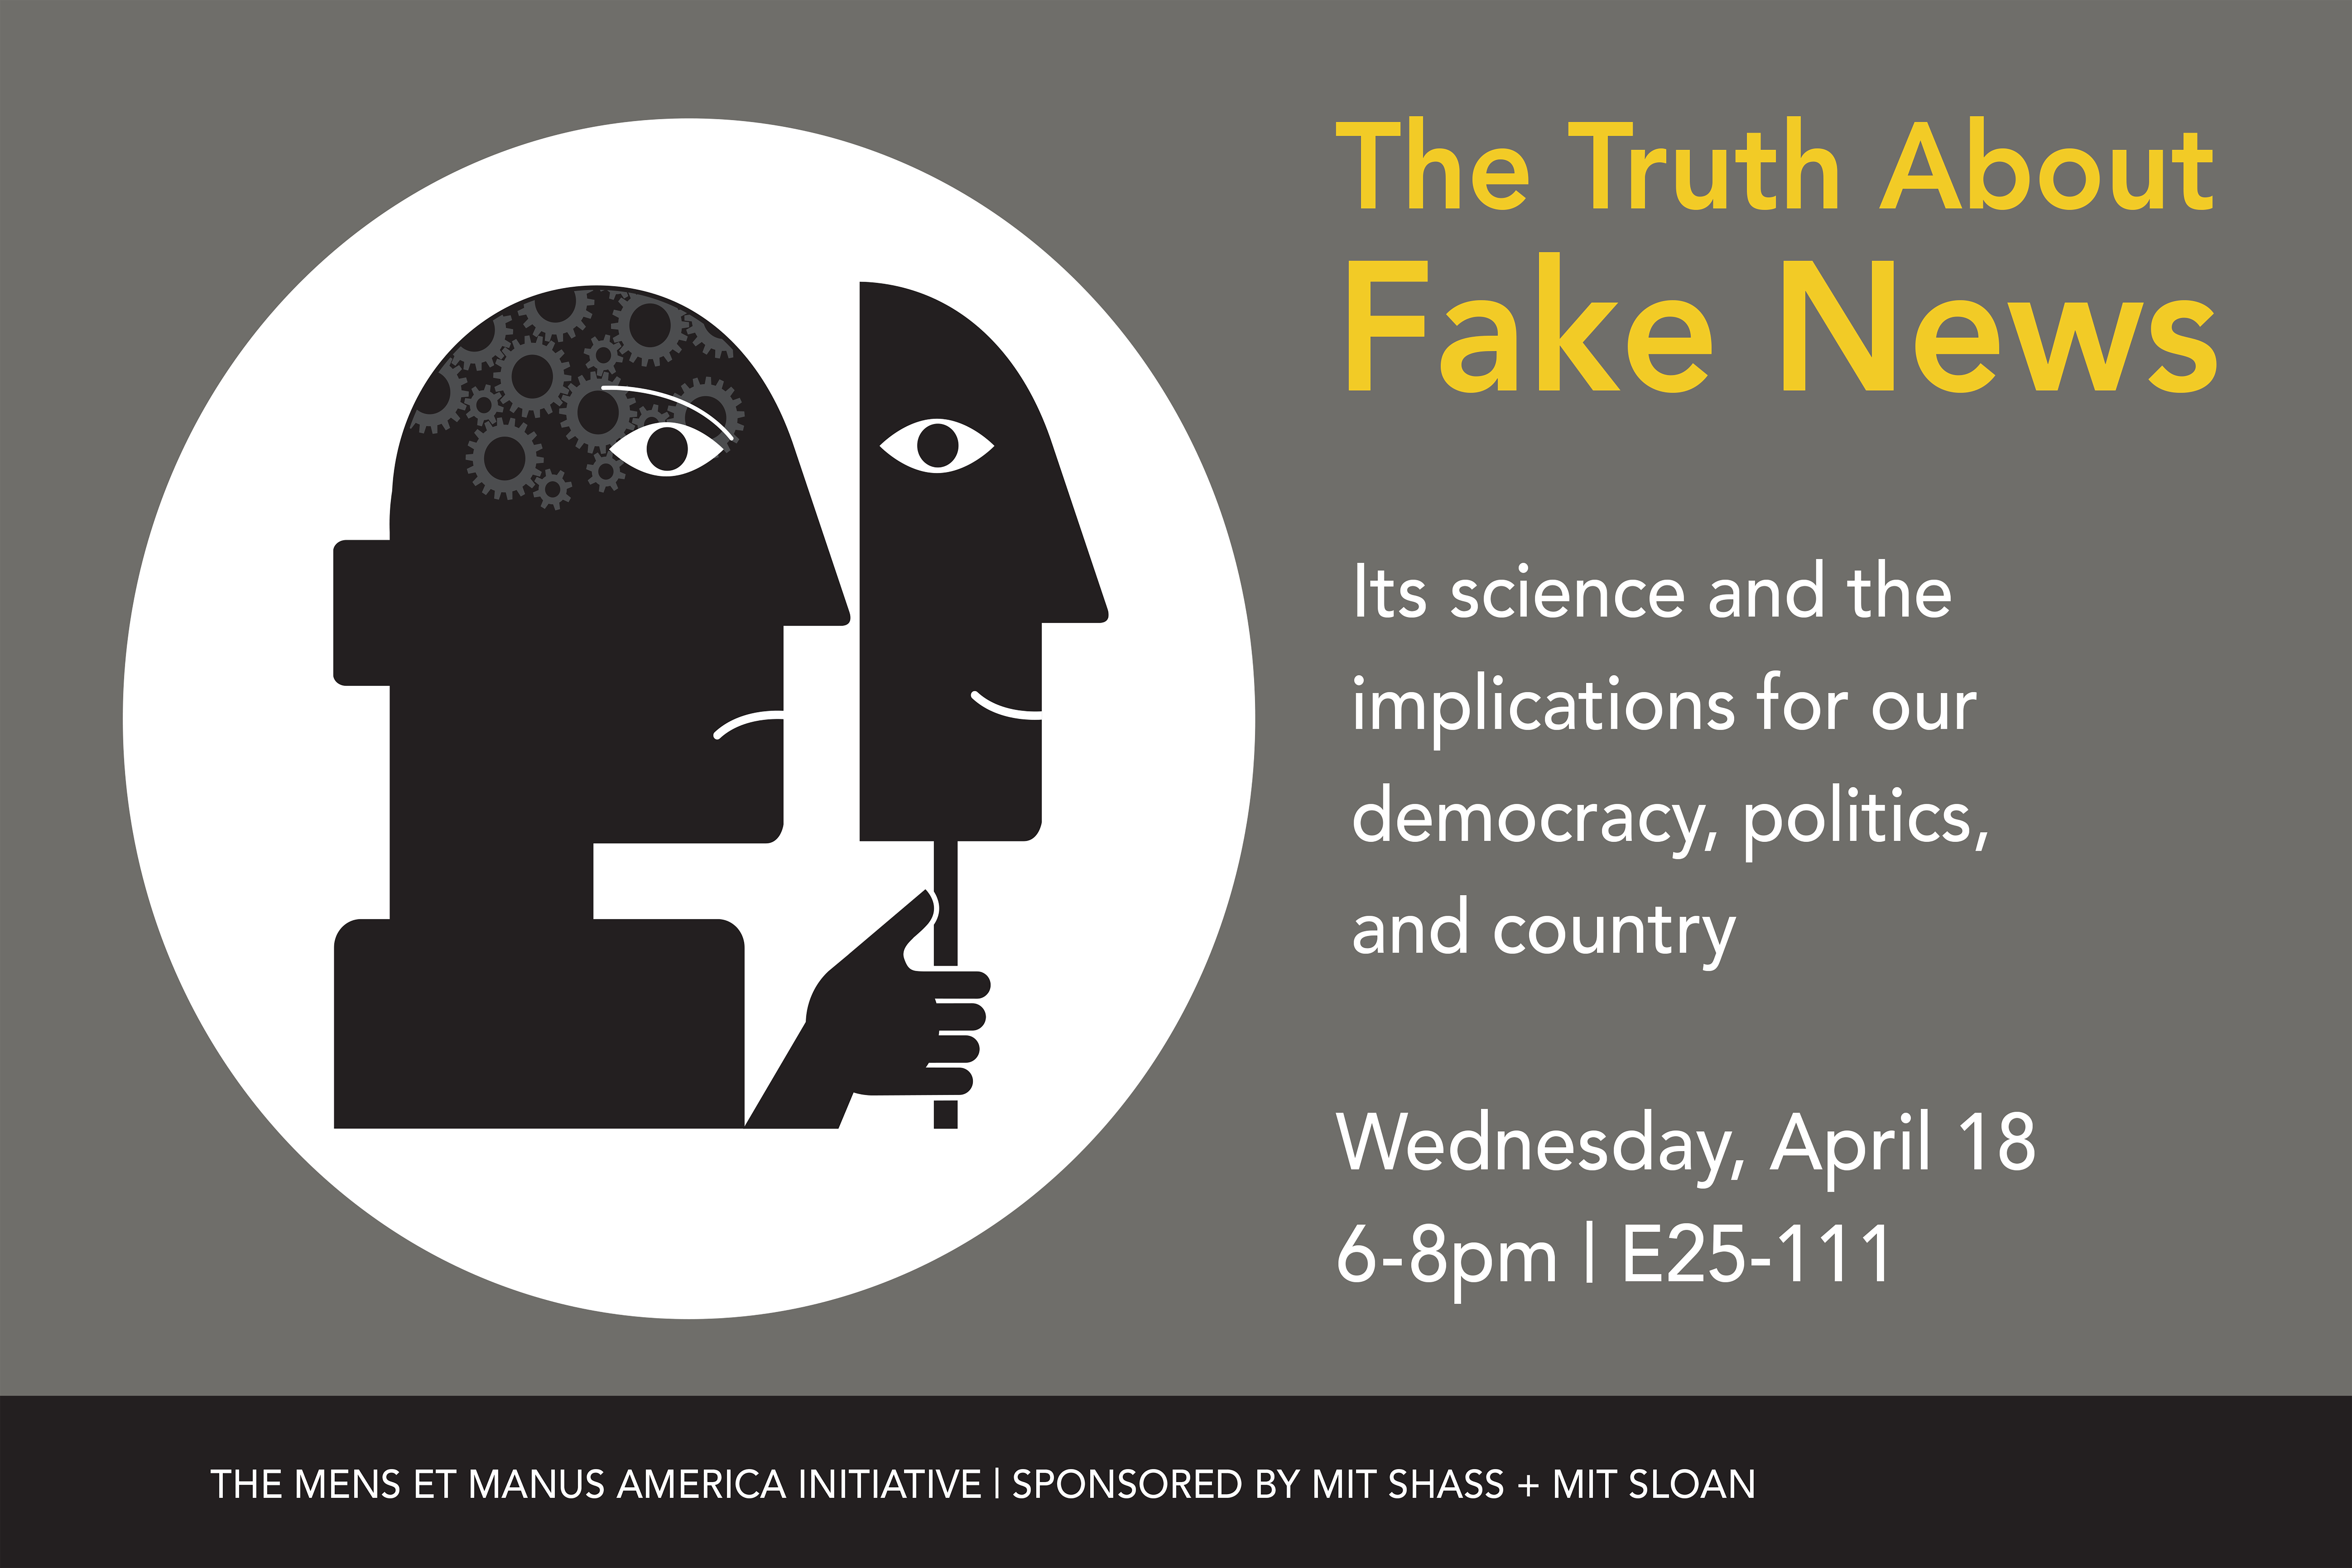 RESCHEDULED - Mens et Manus America - The Truth about Fake News